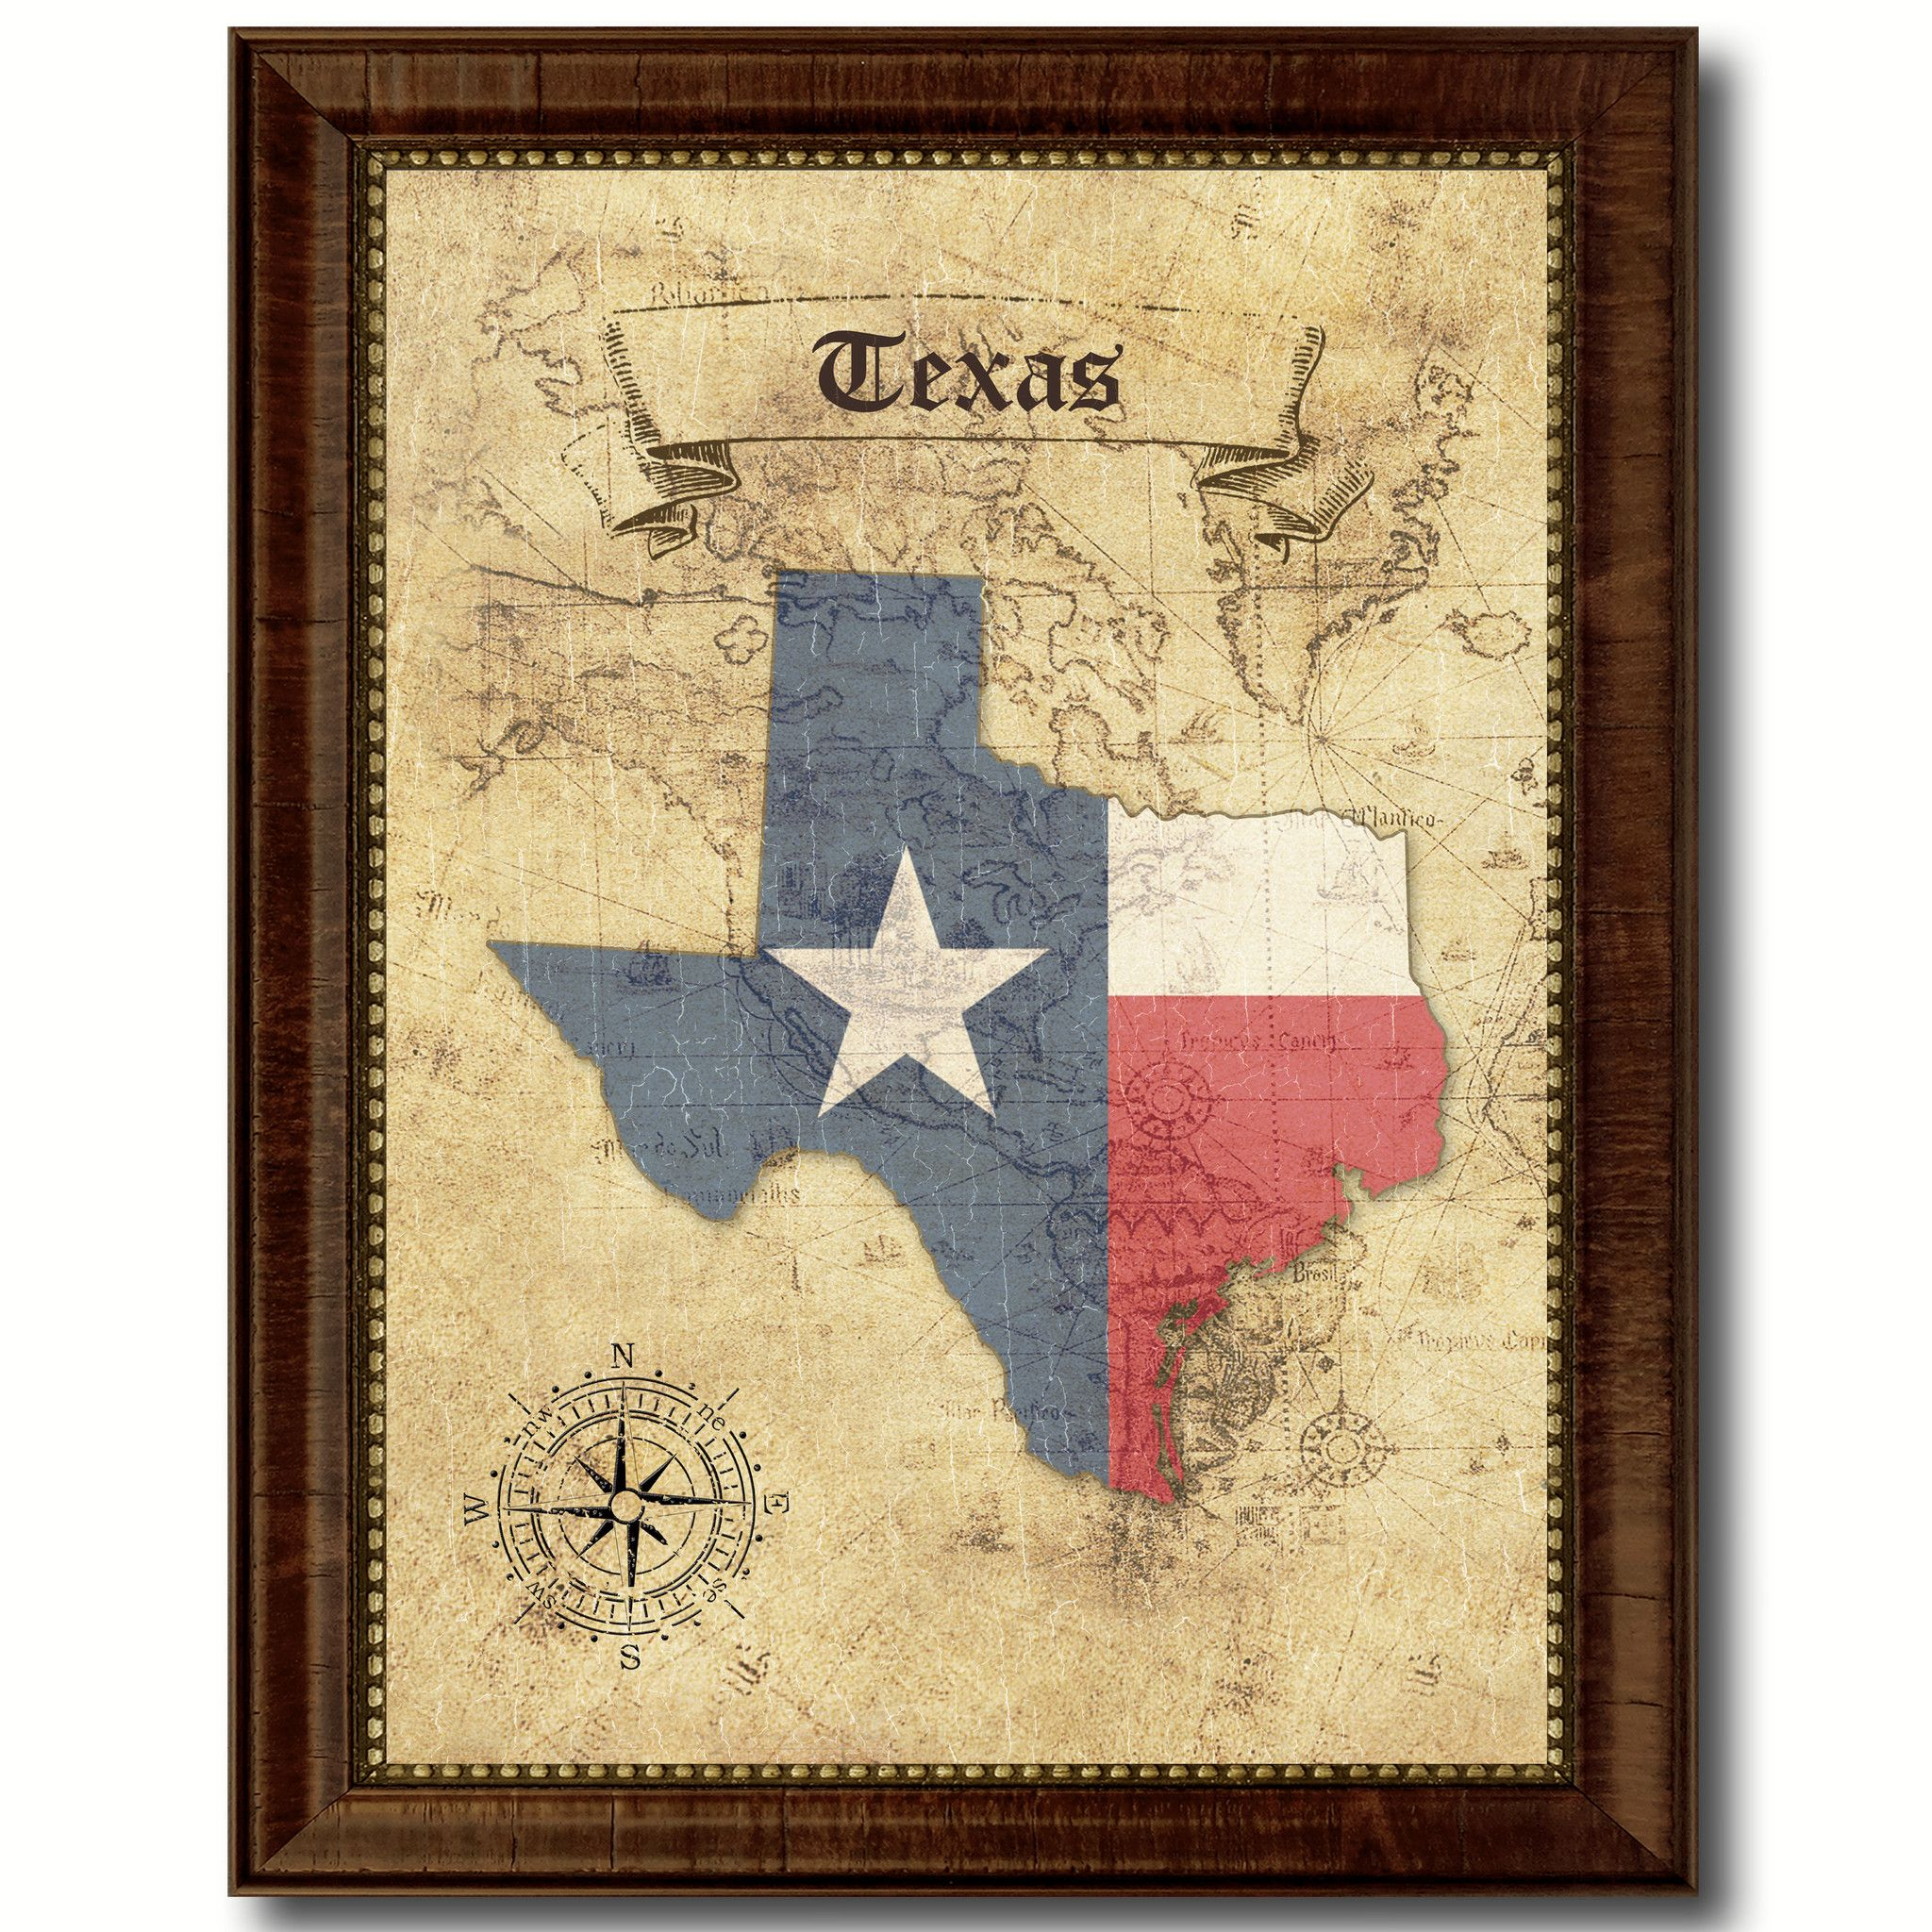 Texas State Vintage Map Home Decor Wall Art Office Decoration Gift ...